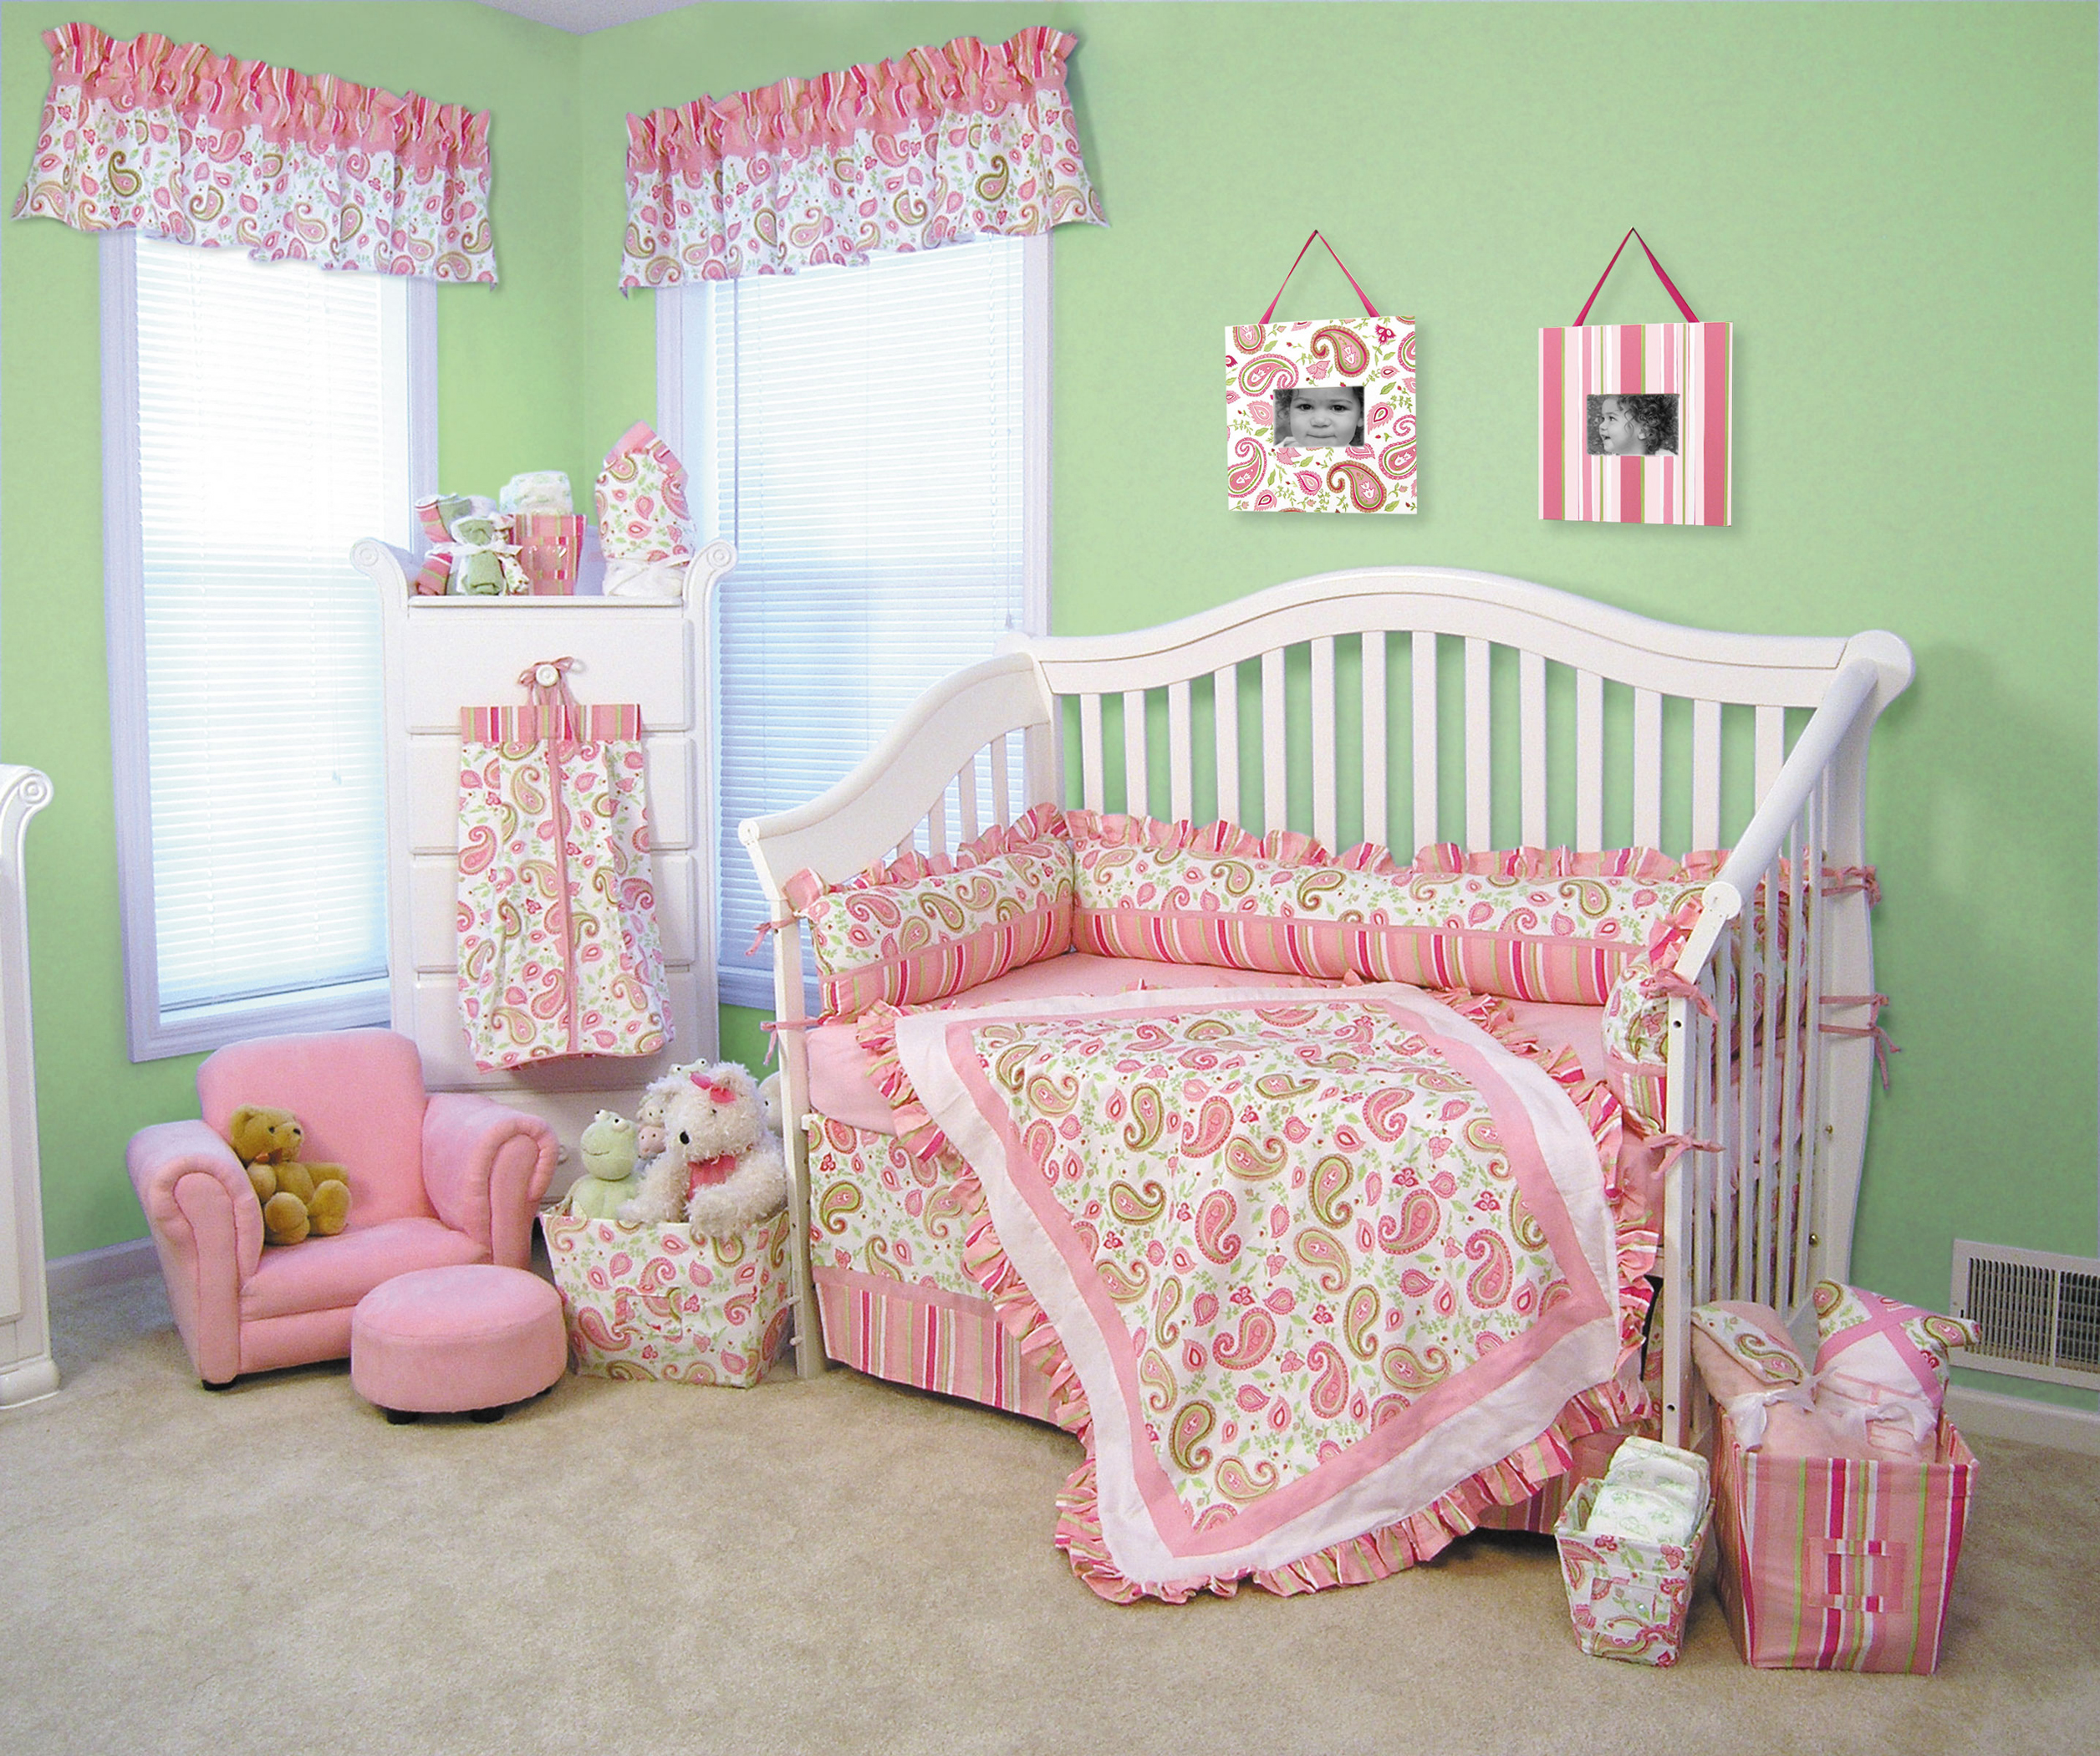 Stunning Baby Girl Crib Bedding Designed In Magenta Color